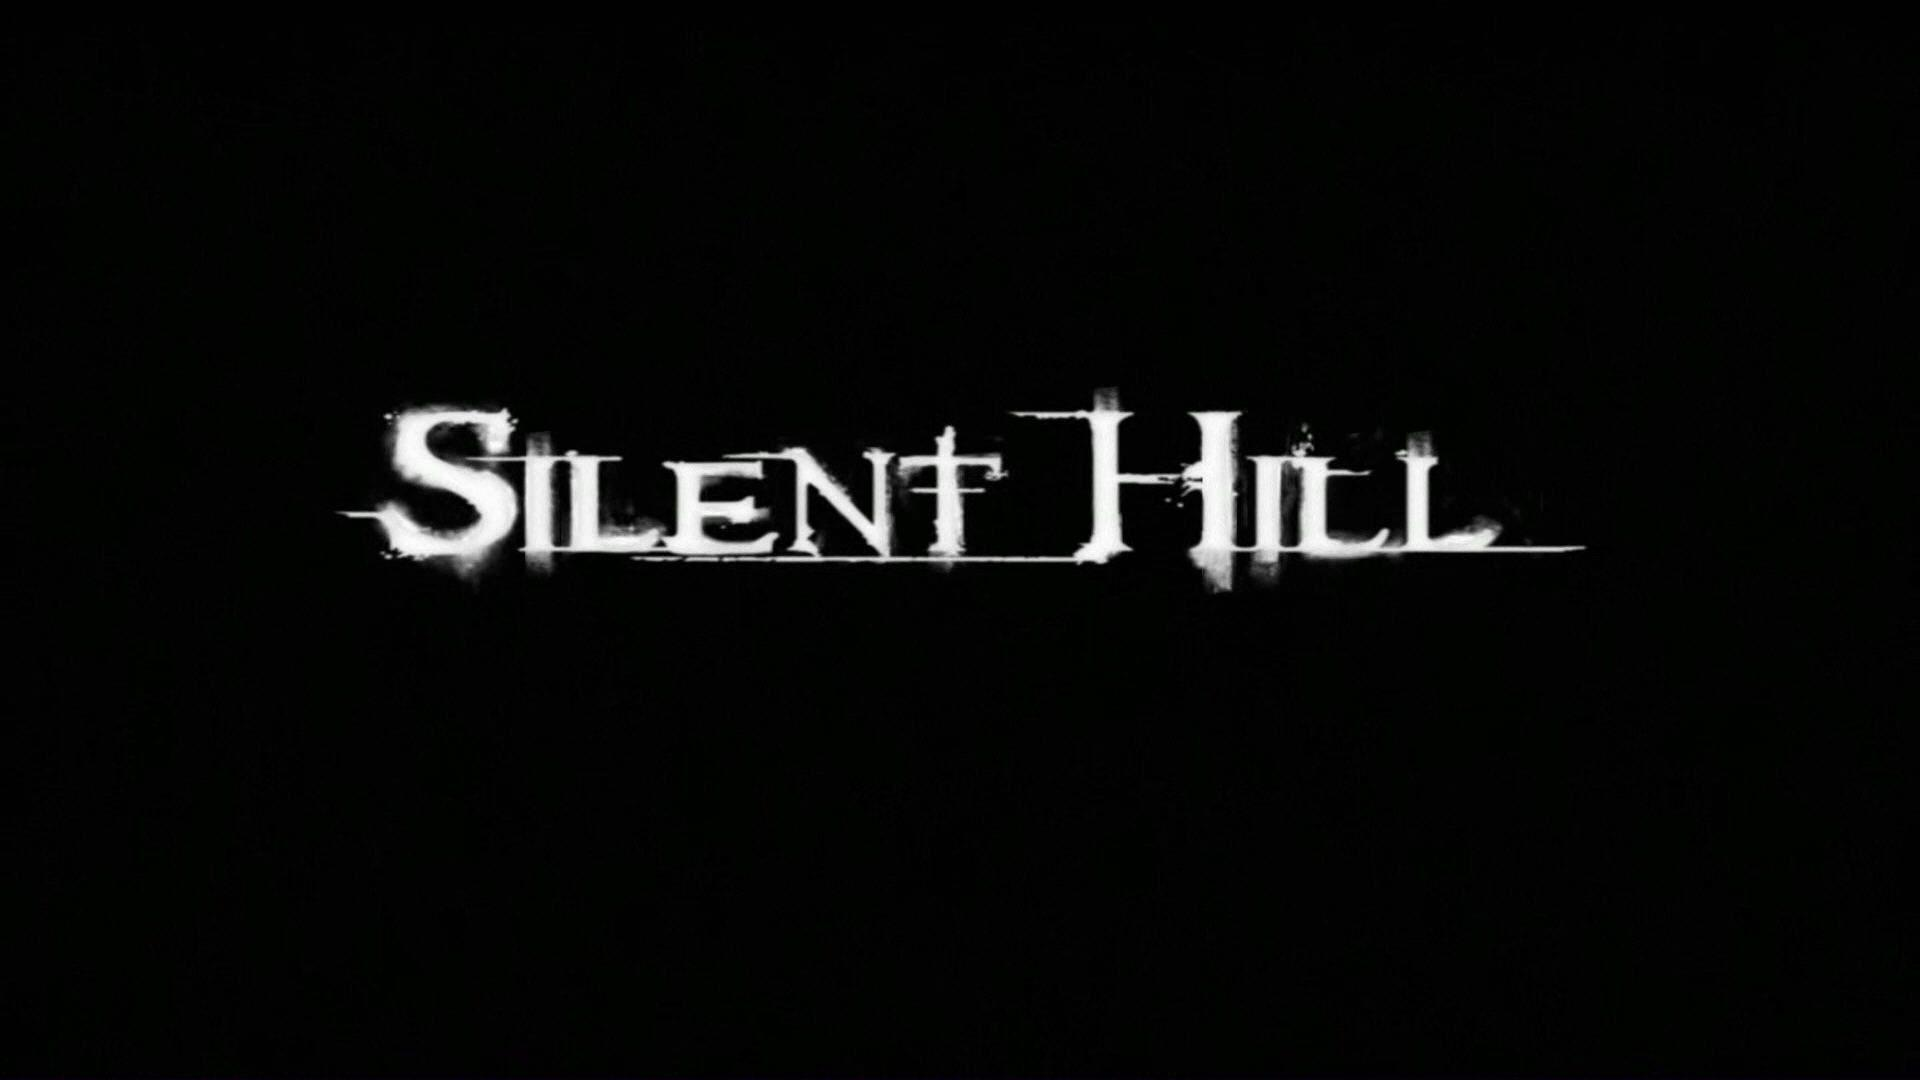 Silent Hill Wallpapers - Wallpaper Cave